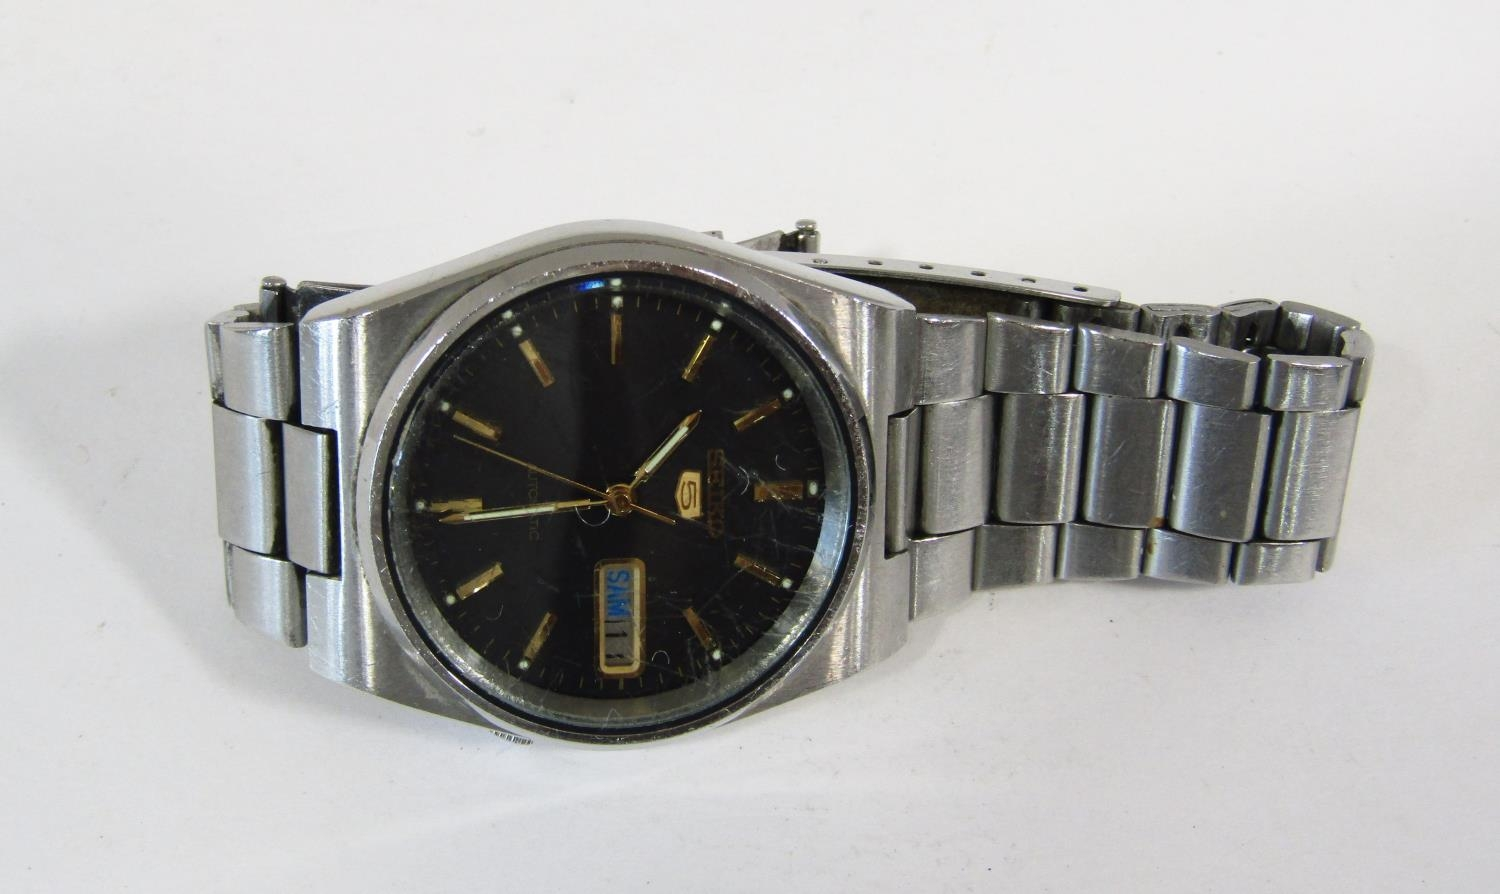 Seiko 5 automatic gents wristwatch, stainless steel case work, black dial with day date aperture - Image 3 of 3